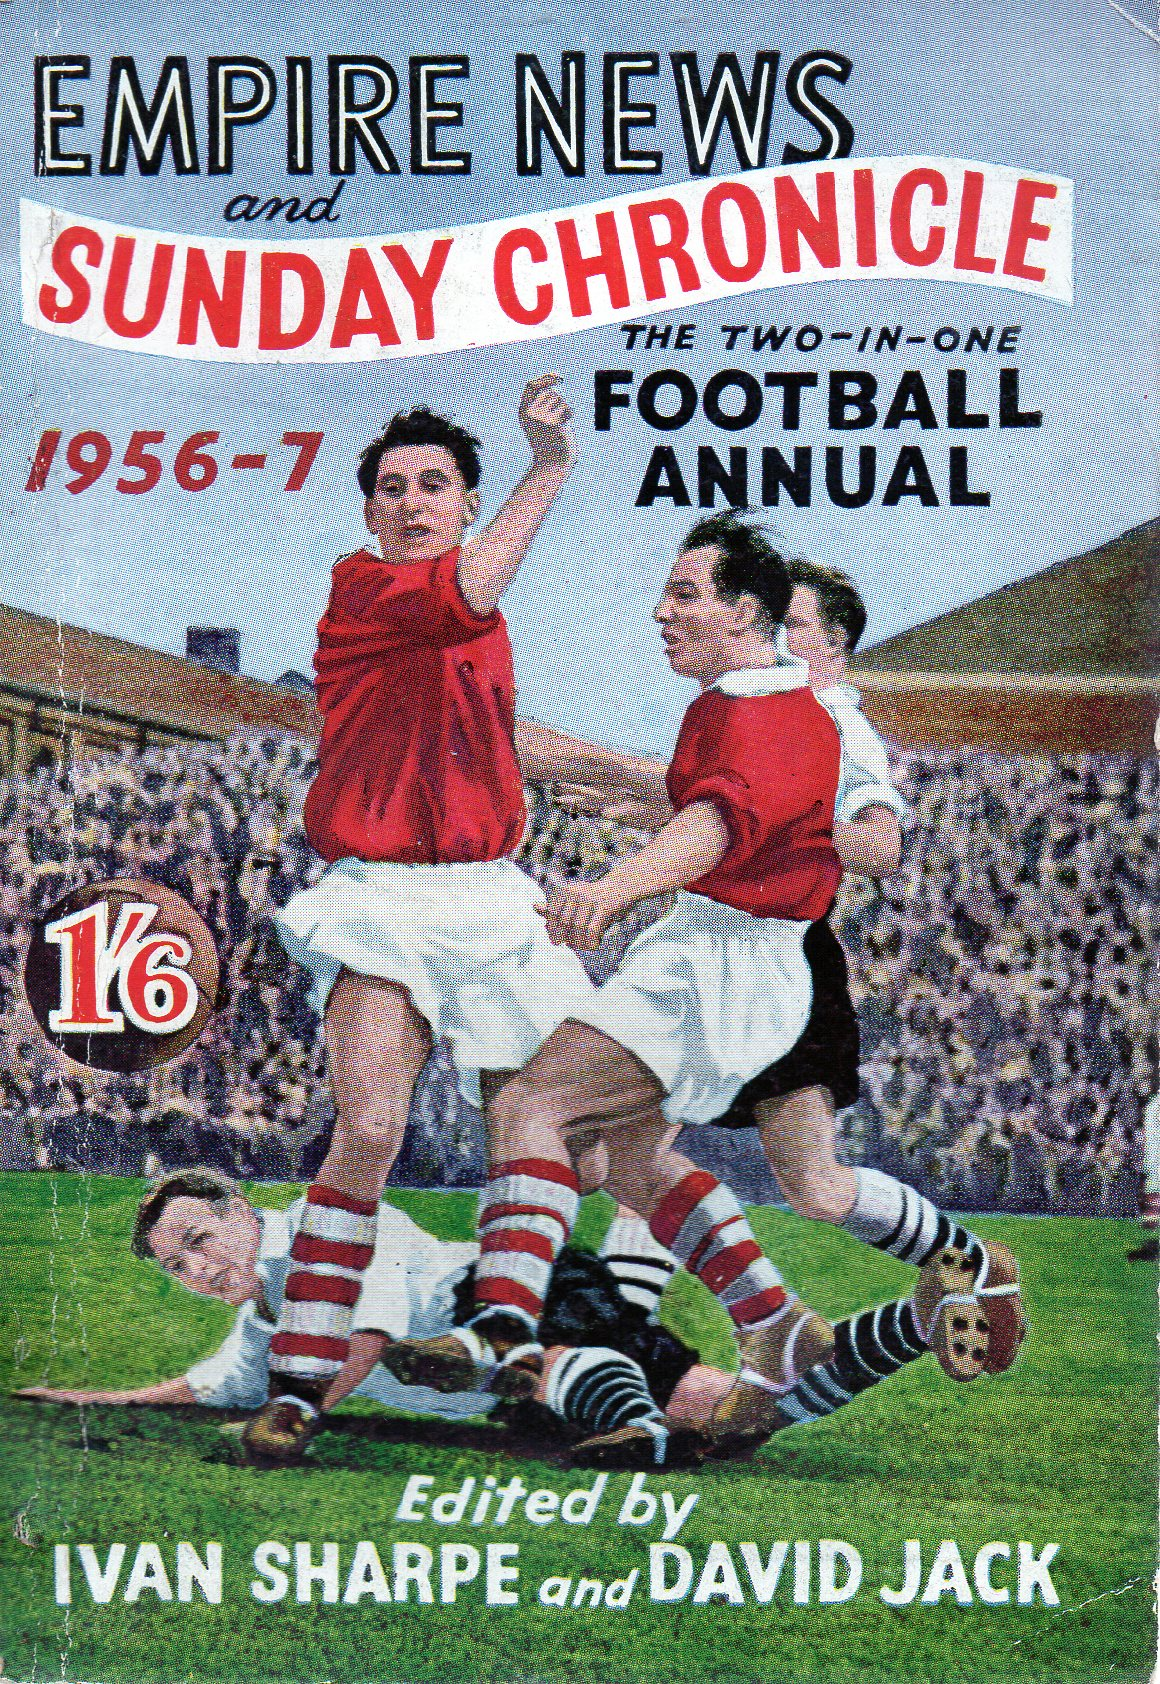 Laurie Hughes on the cover of Empire News and Sunday Chronicle 1956/57 annual